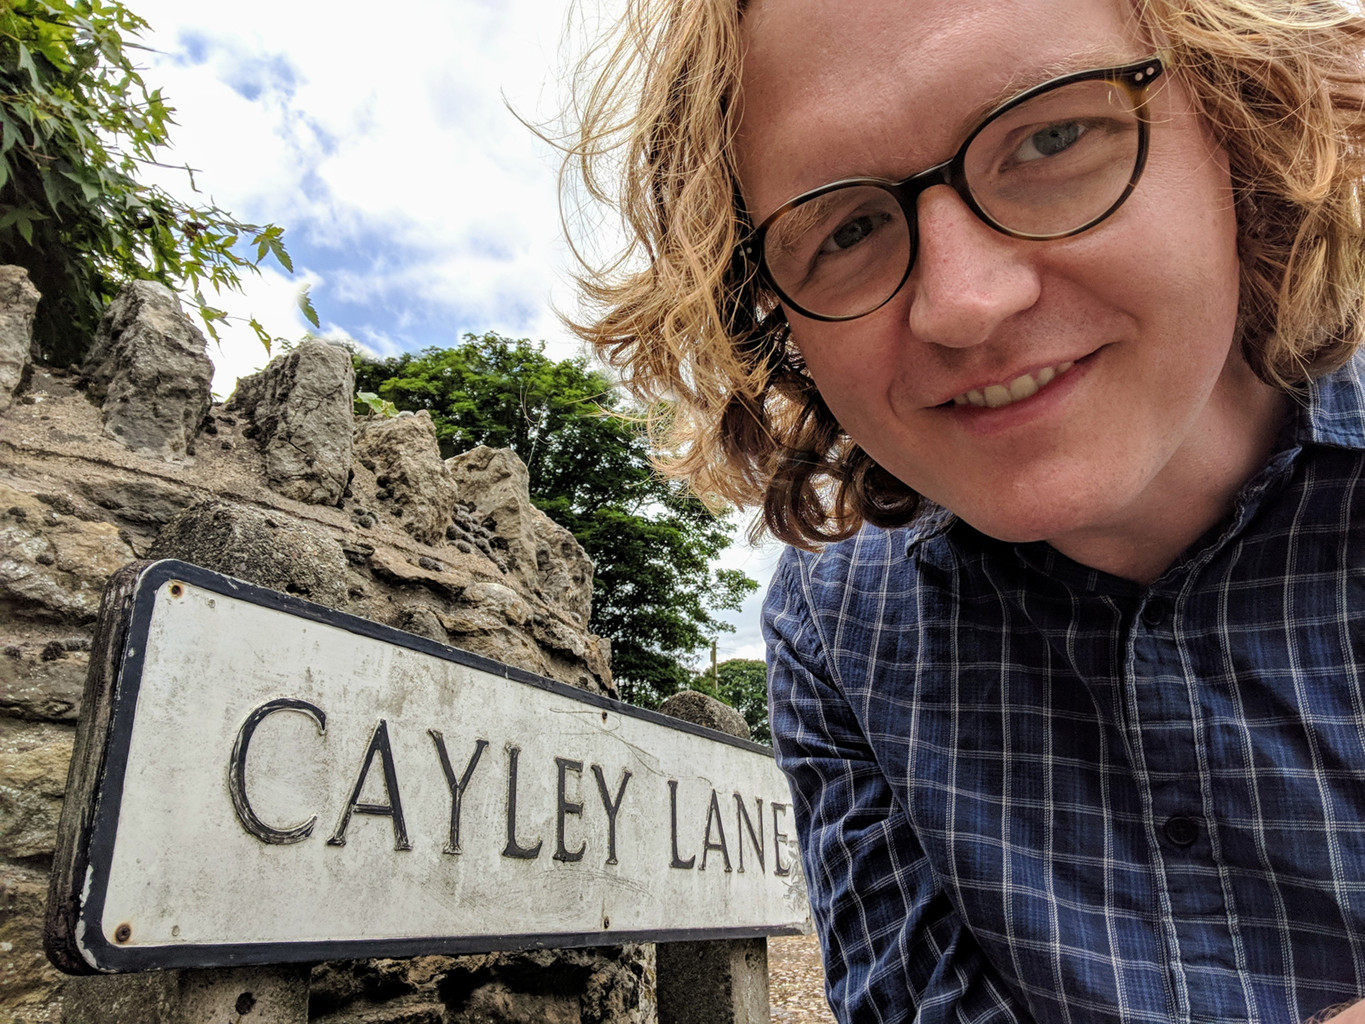 Carl McTague on Cayley Lane (2018)